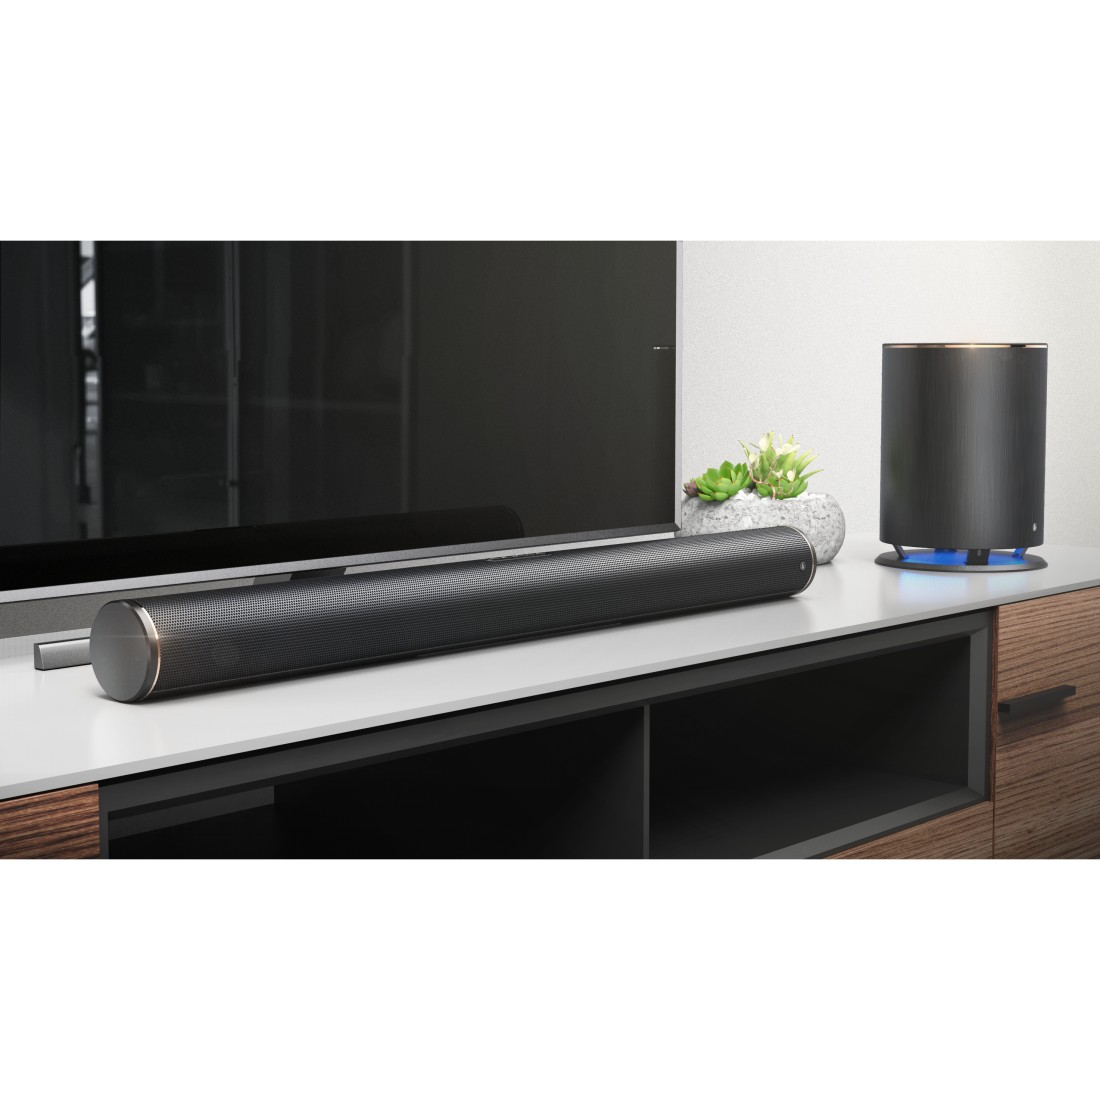 awx4 Druckfähige Anwendung 4 - Hama, Smart-TV-Soundbar 2.1 SIRIUM4000ABT, Wireless Subwoofer/Alexa/Bluetooth